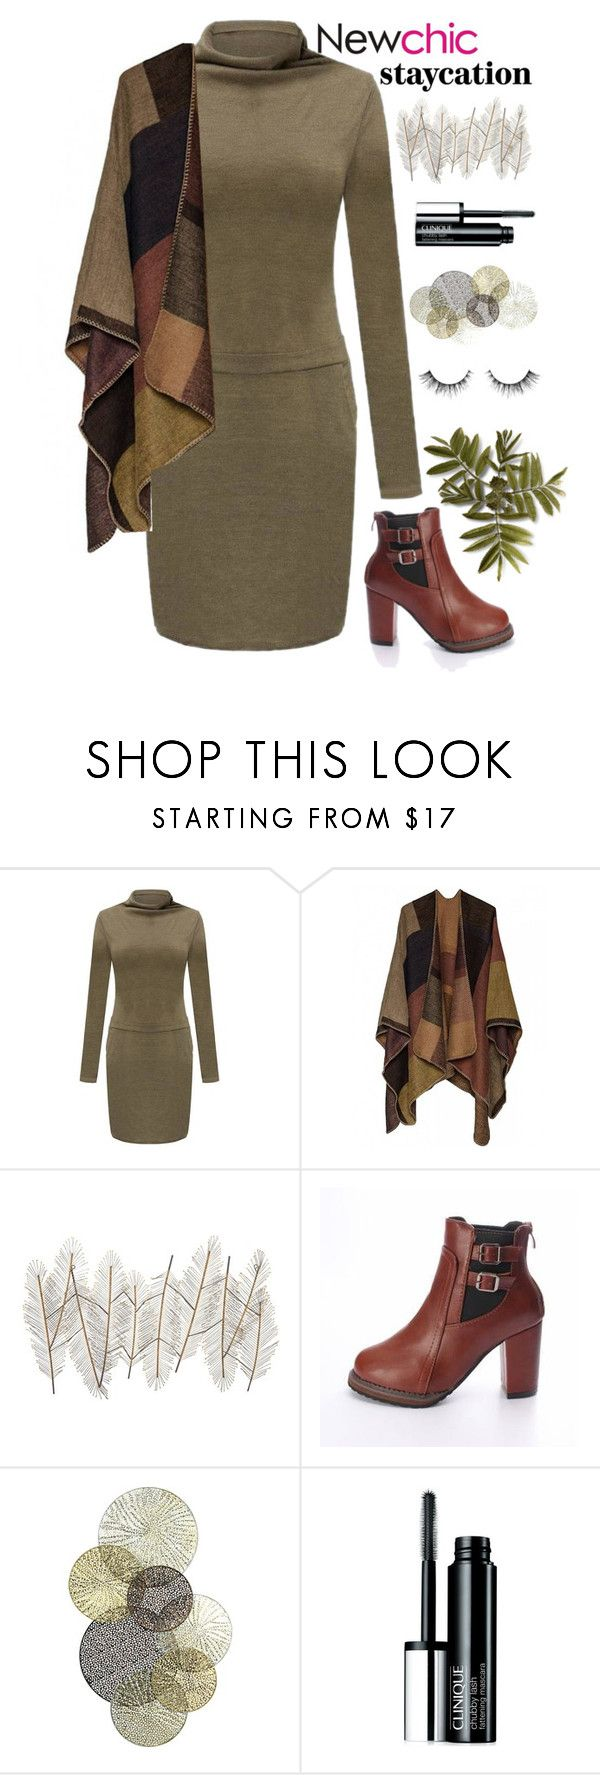 """""""Olive in the moment"""" by hevsyblue2 ❤ liked on Polyvore featuring Universal Lighting and Decor, Clinique, olive and staycation"""